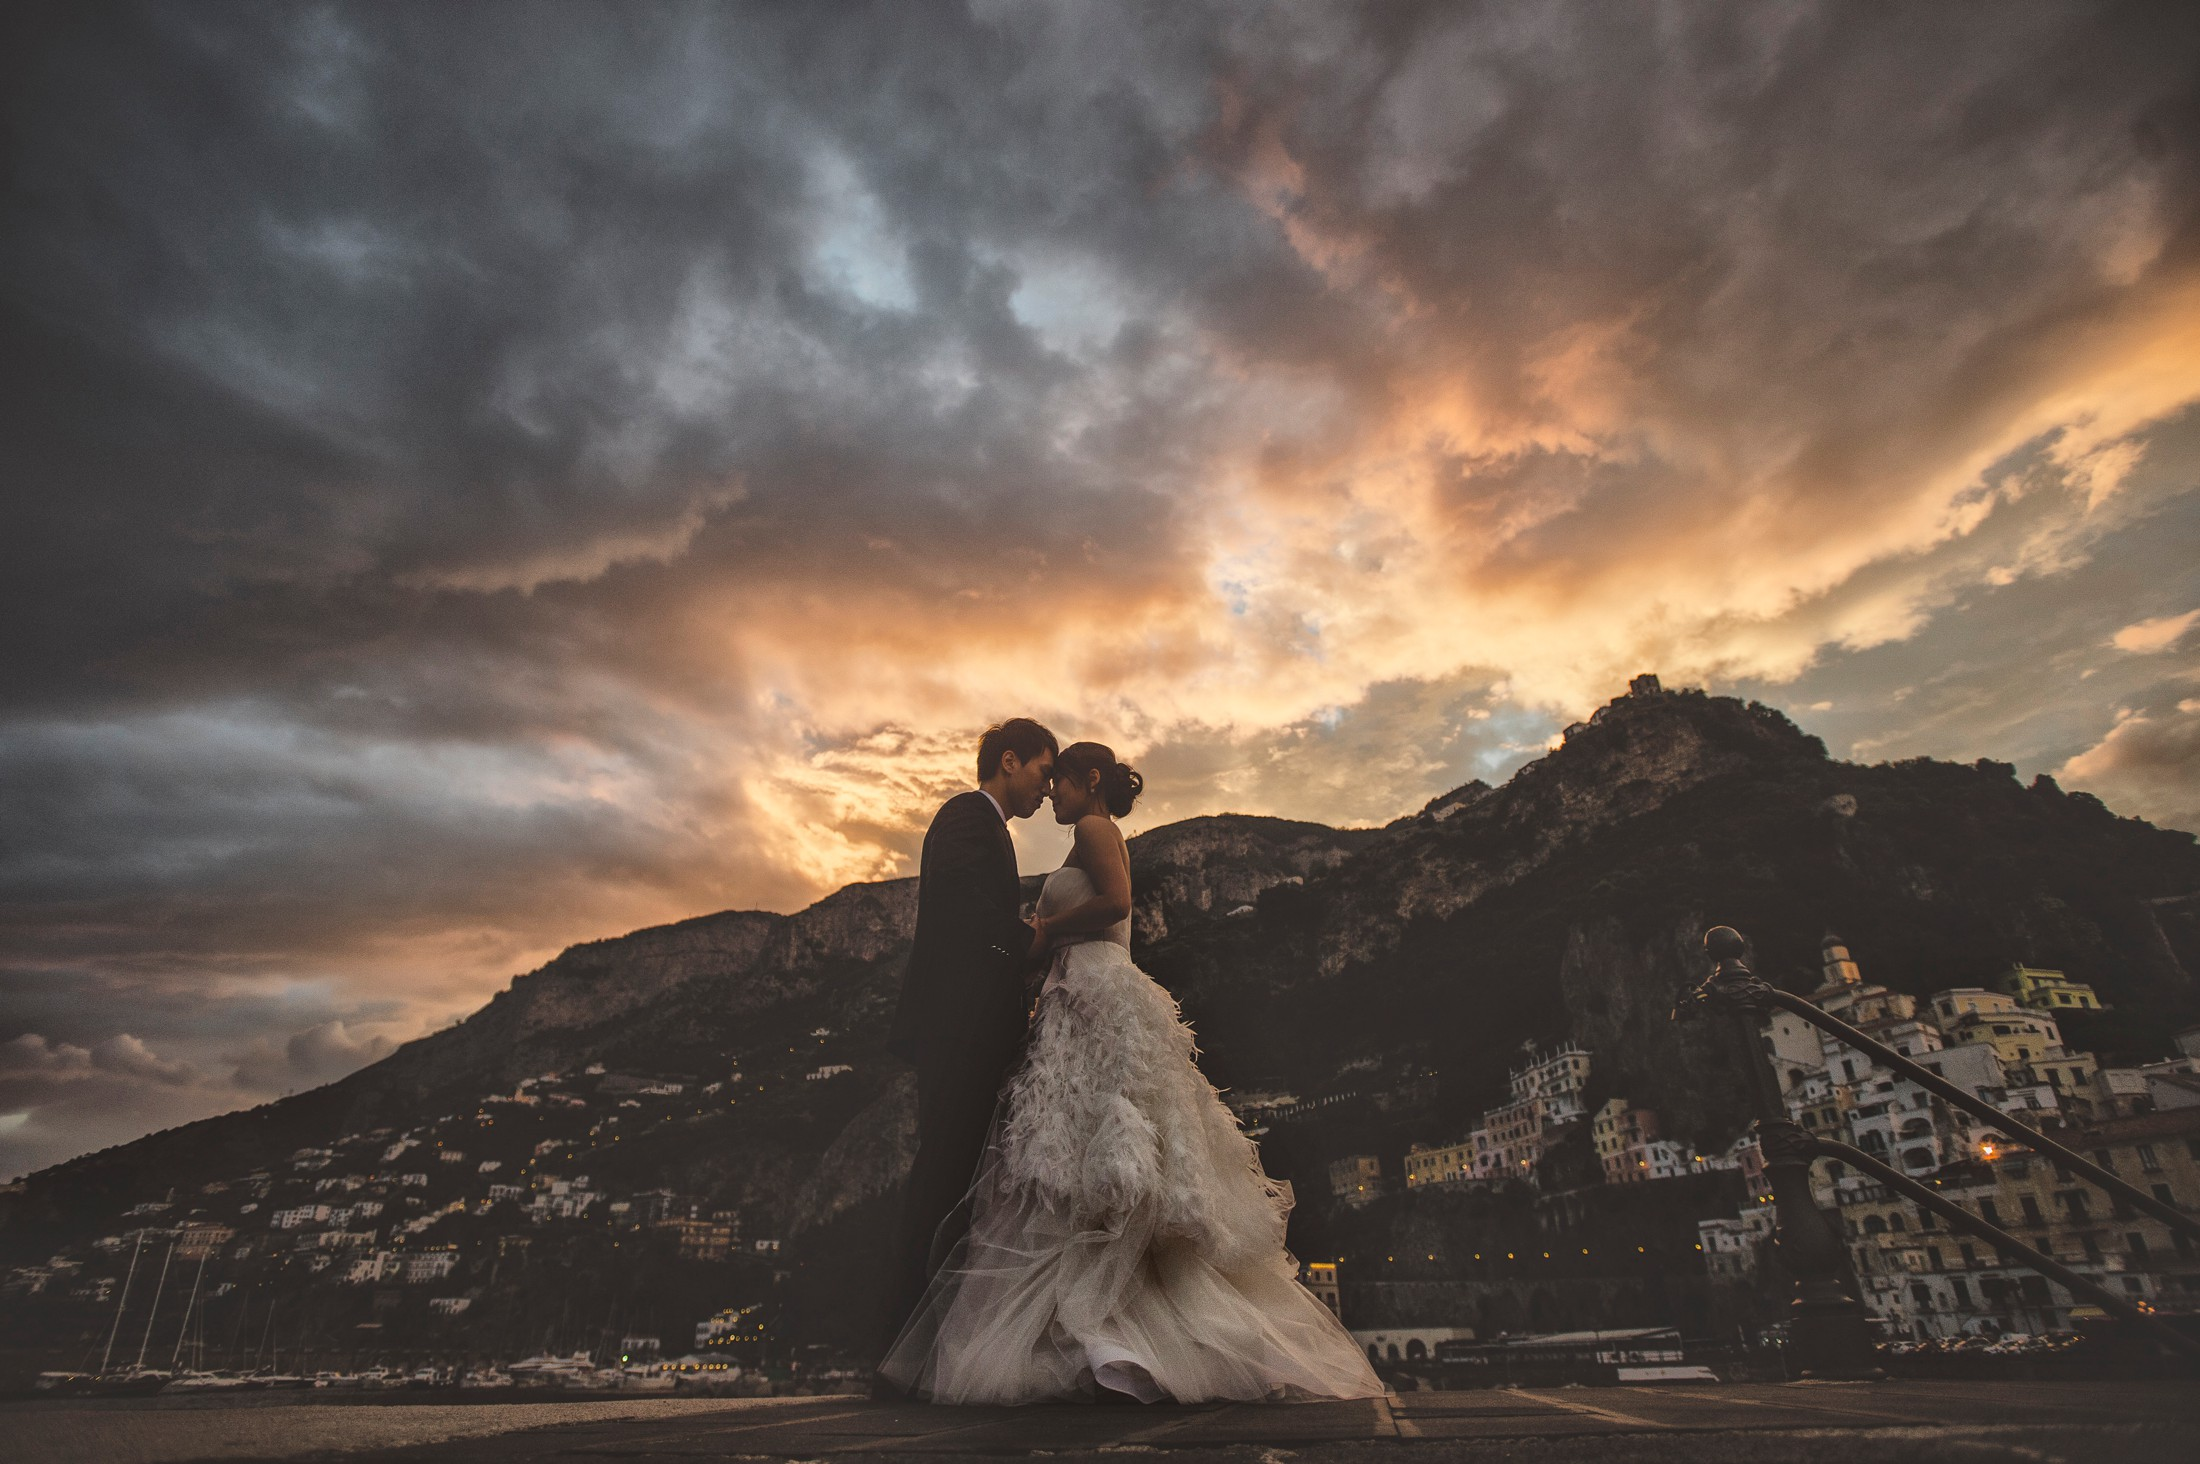 wedding on the amalfi coast bride and groom portrait with amalfi as background at sunset time